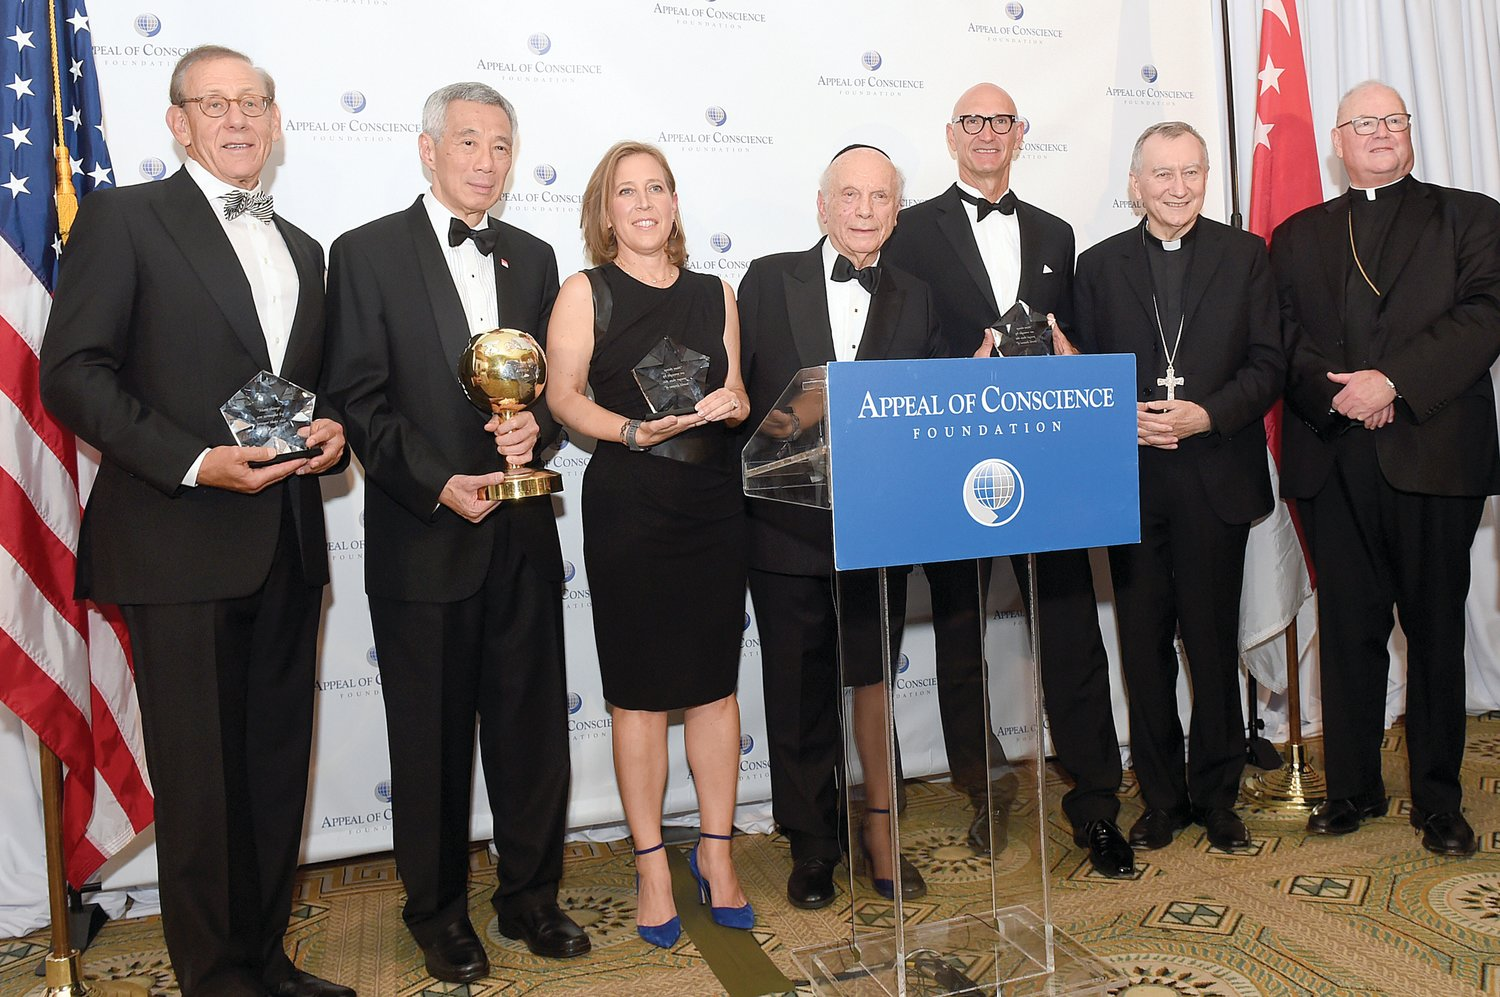 Cardinal Dolan, right, and Cardinal Pietro Parolin, Vatican secretary of state, second from right, look on as Rabbi Arthur Schneier, president and founder of the Appeal of Conscience Foundation, center, presents the 2019 World Statesman Award to Lee Hsien Loong, prime minister of Singapore, second from left, at the annual Appeal of Conscience Awards Dinner Sept. 23 at the Pierre Hotel in Manhattan. The 2019 Appeal of Conscience Awards were presented to, from left, Stephen Ross, chairman and founder of Related Companies; Susan Wojcicki, CEO of YouTube; and Timotheus Höttges, CEO of Deutsche Telekom AG. Cardinal Dolan offered the invocation and Cardinal Parolin delivered greetings from Pope Francis. The Appeal of Conscience Foundation, headquartered in Manhattan, is an interfaith organization dedicated to religious freedom and human rights.